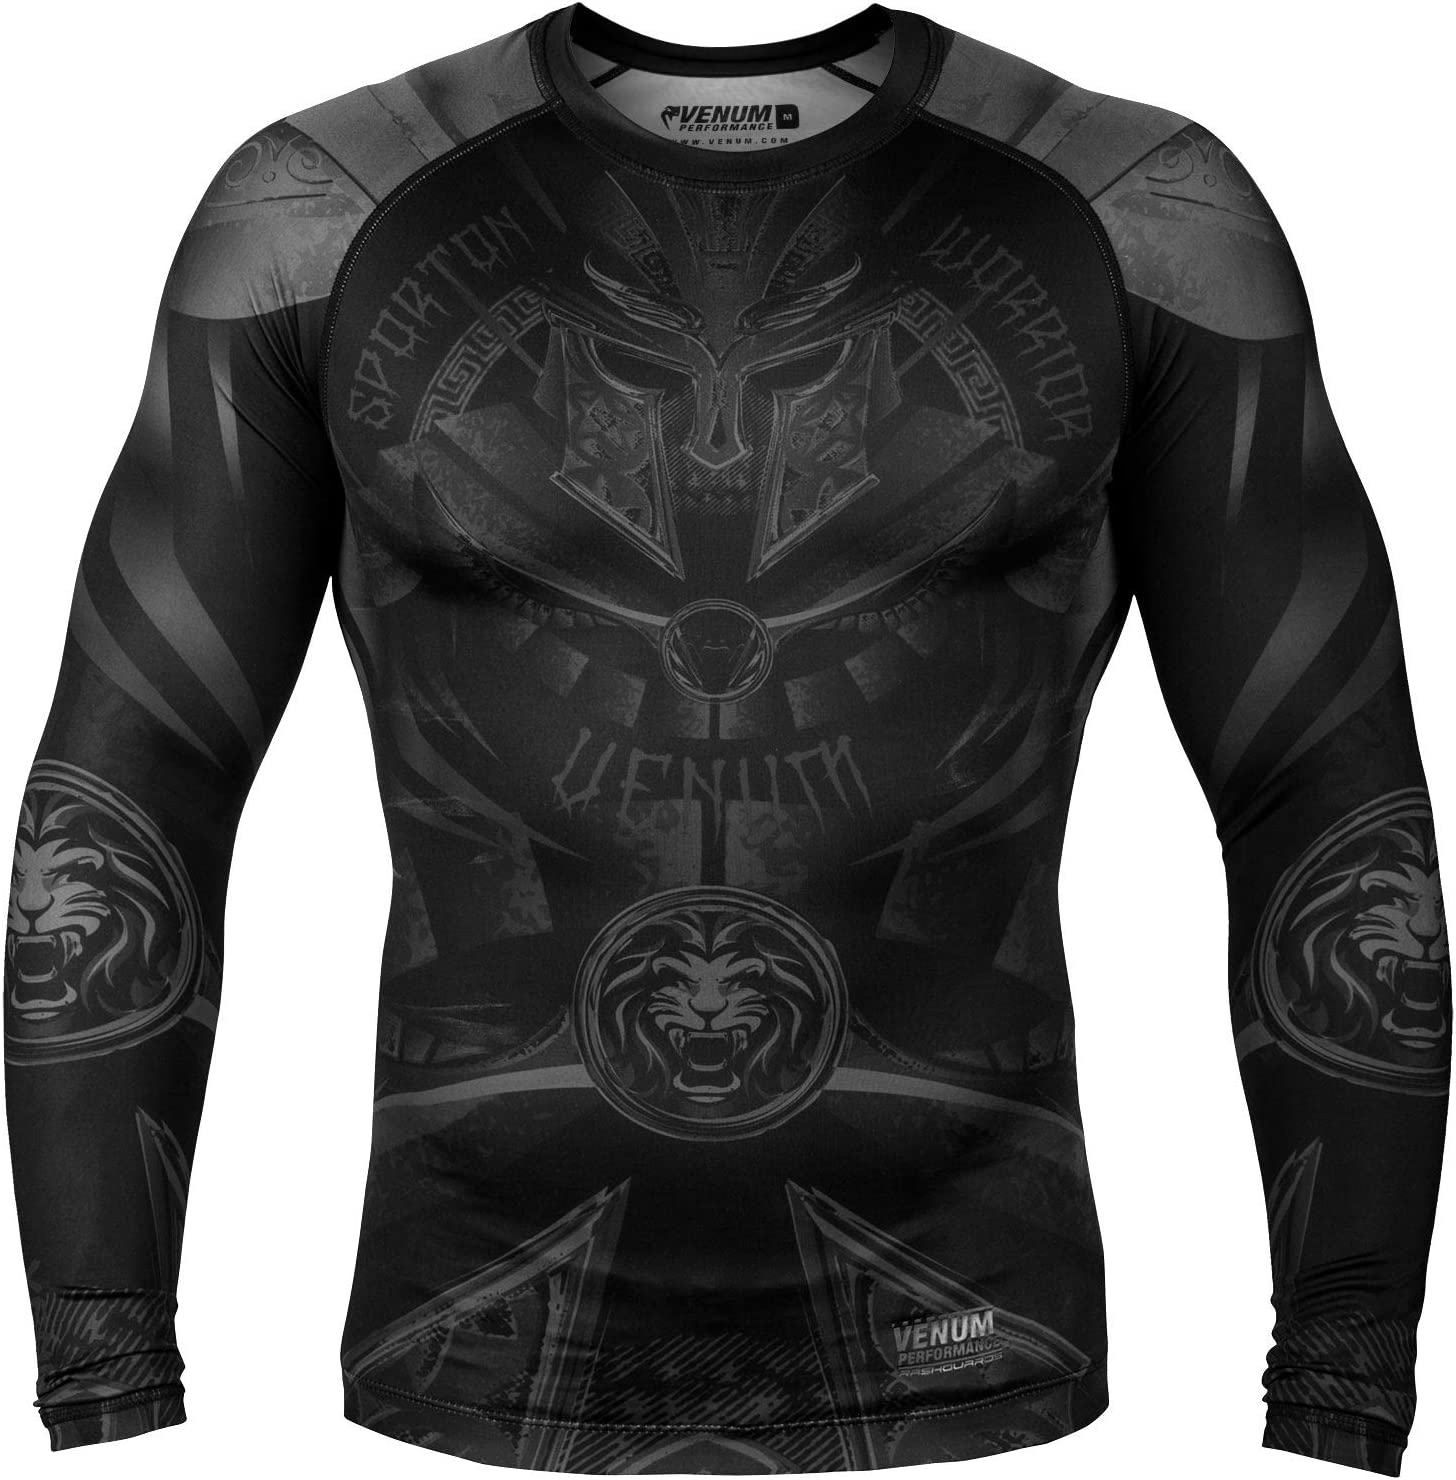 Venum Gladiator 3.0 Long Sleeve Rashguard